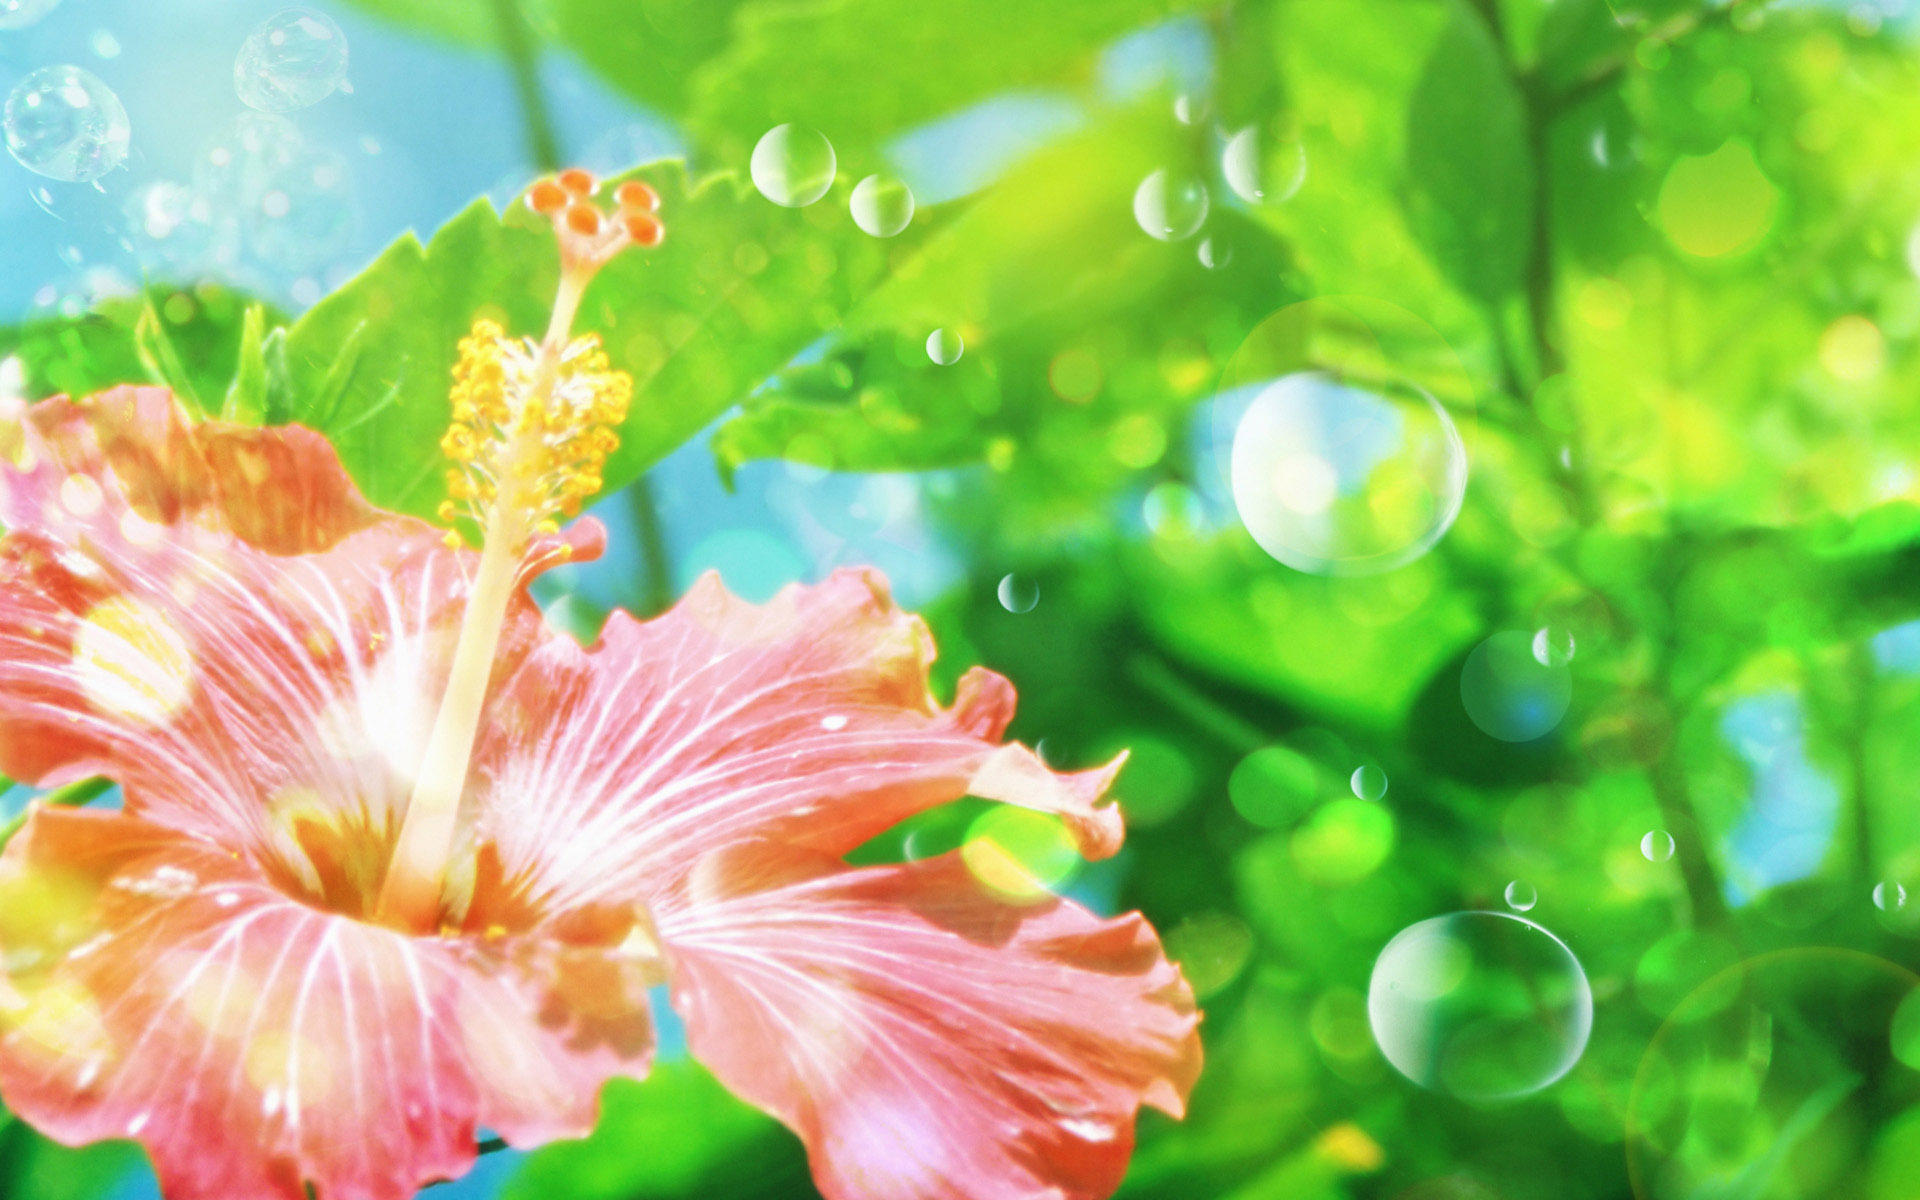 Windows 7 vista xp picks flower wallpapers